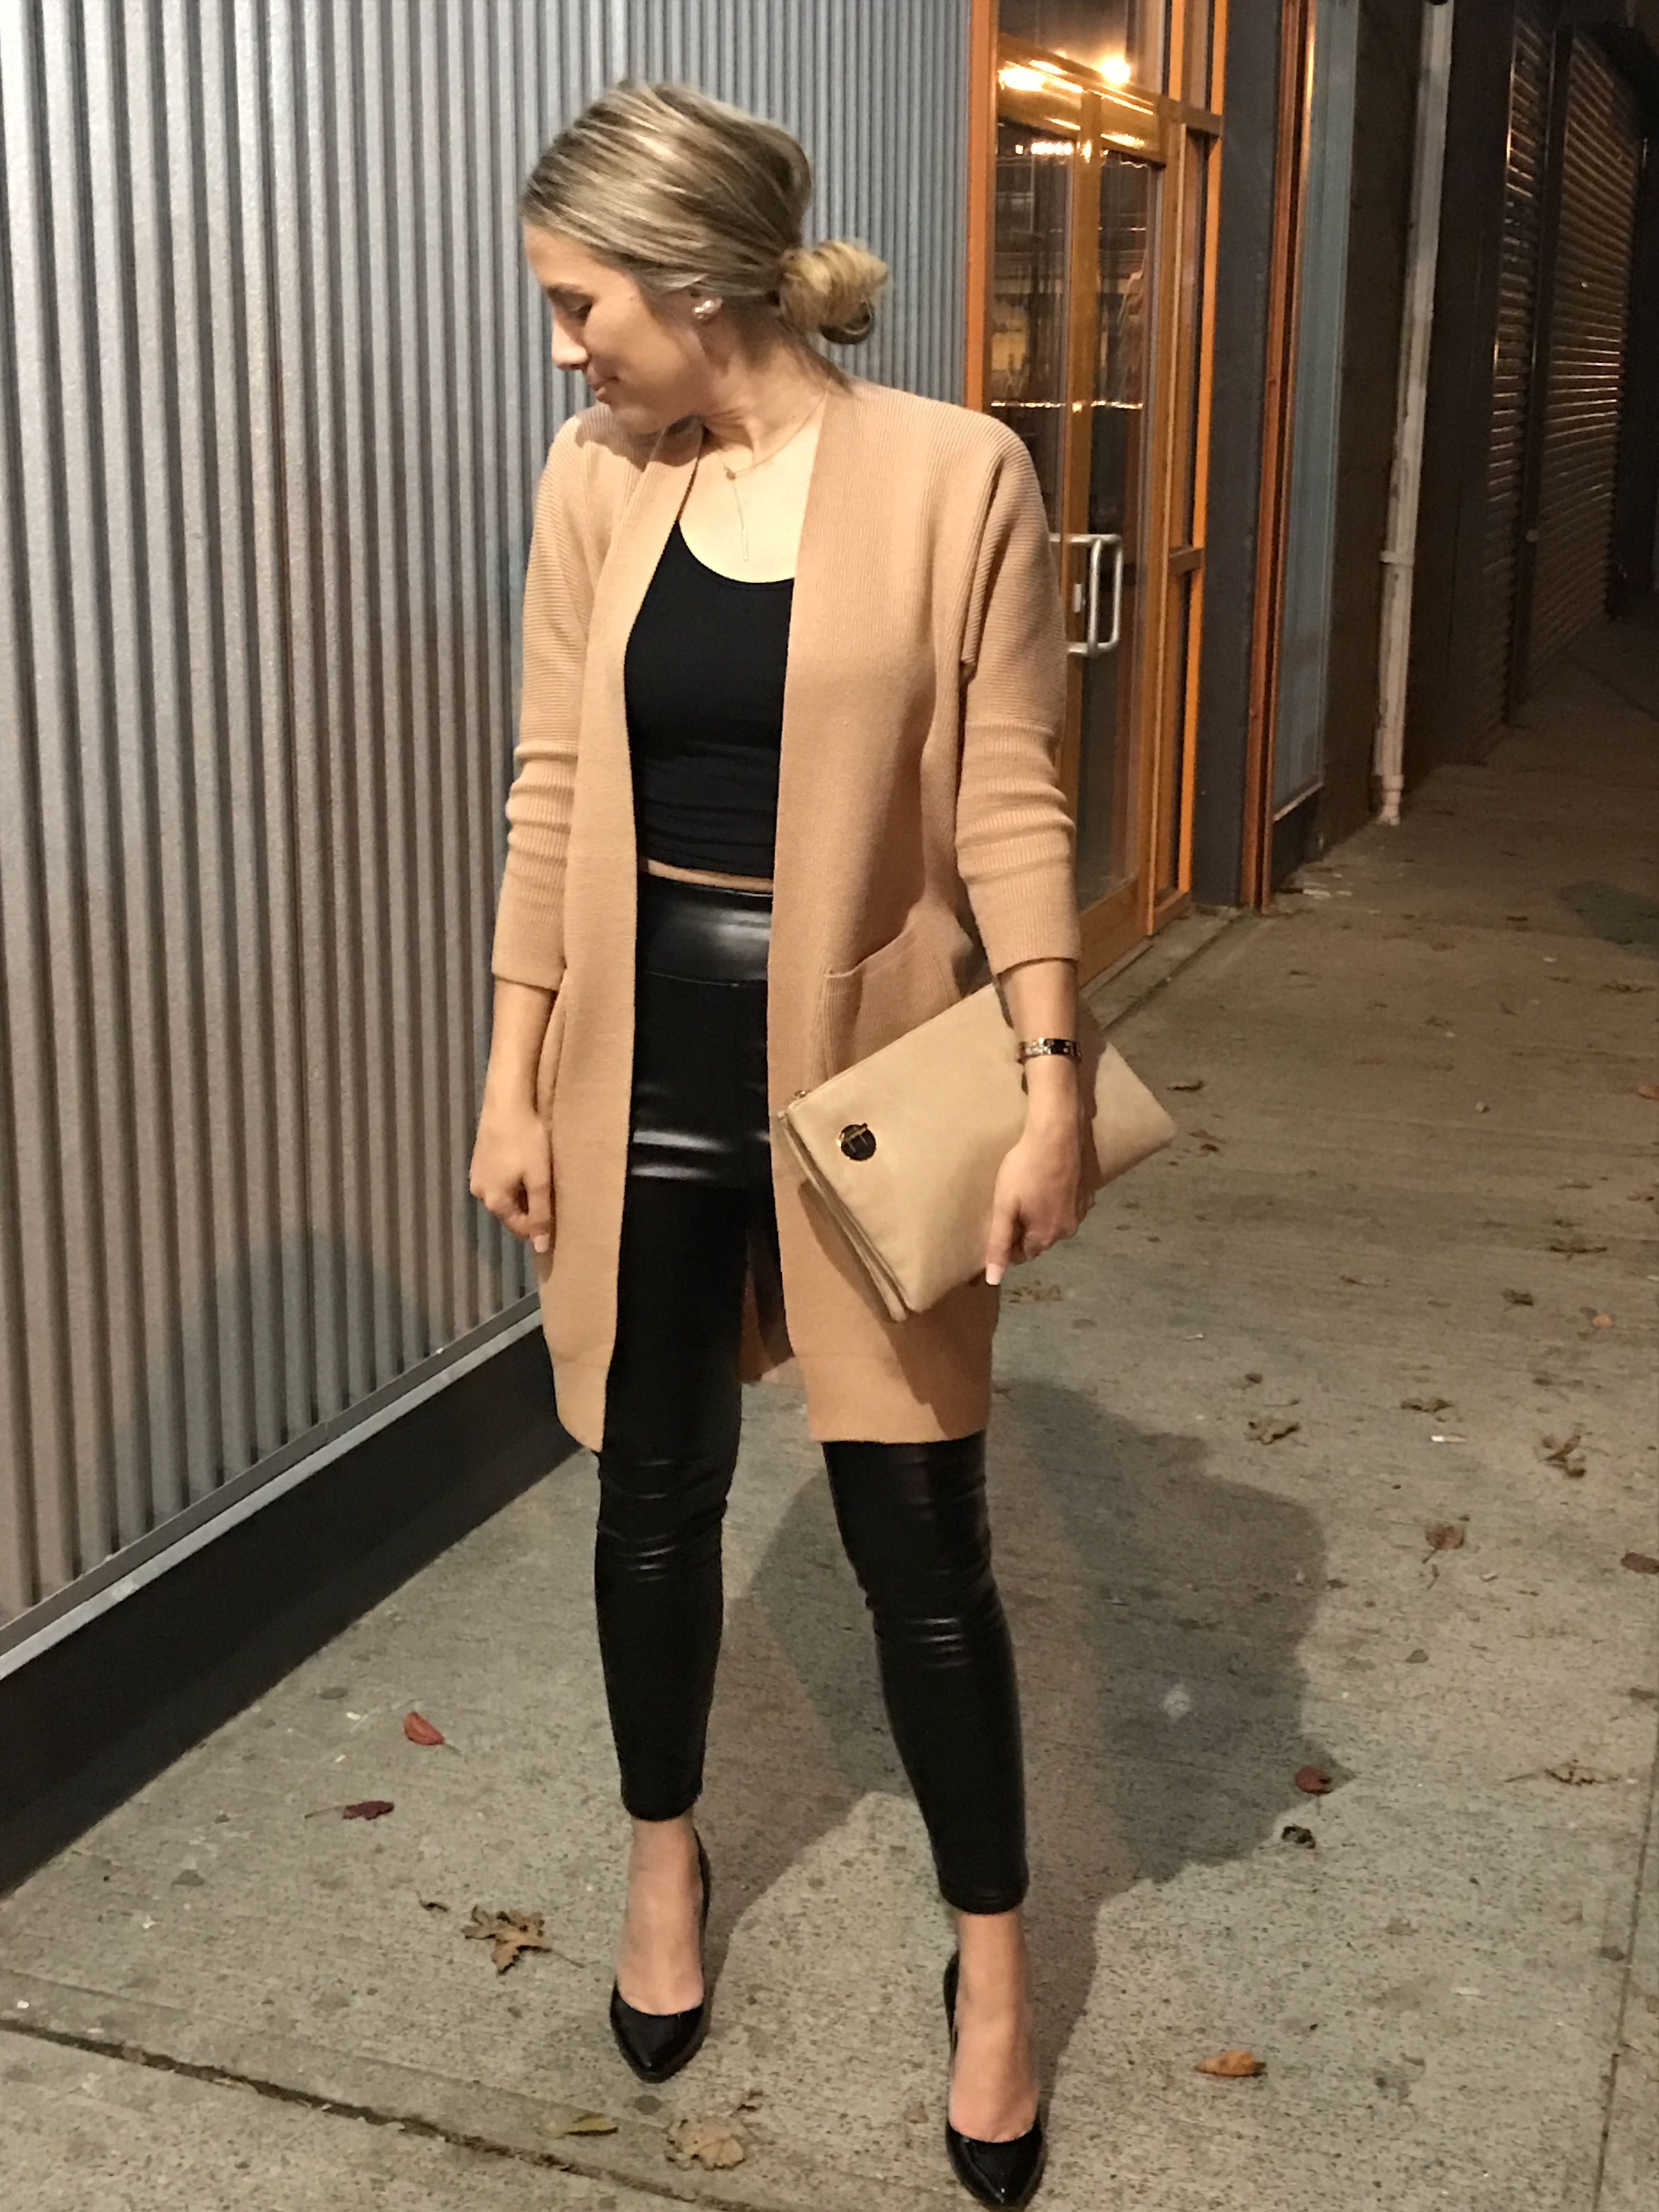 Sweaters+Leather #StreetStyle | aposhparalegal | Bloglovin'